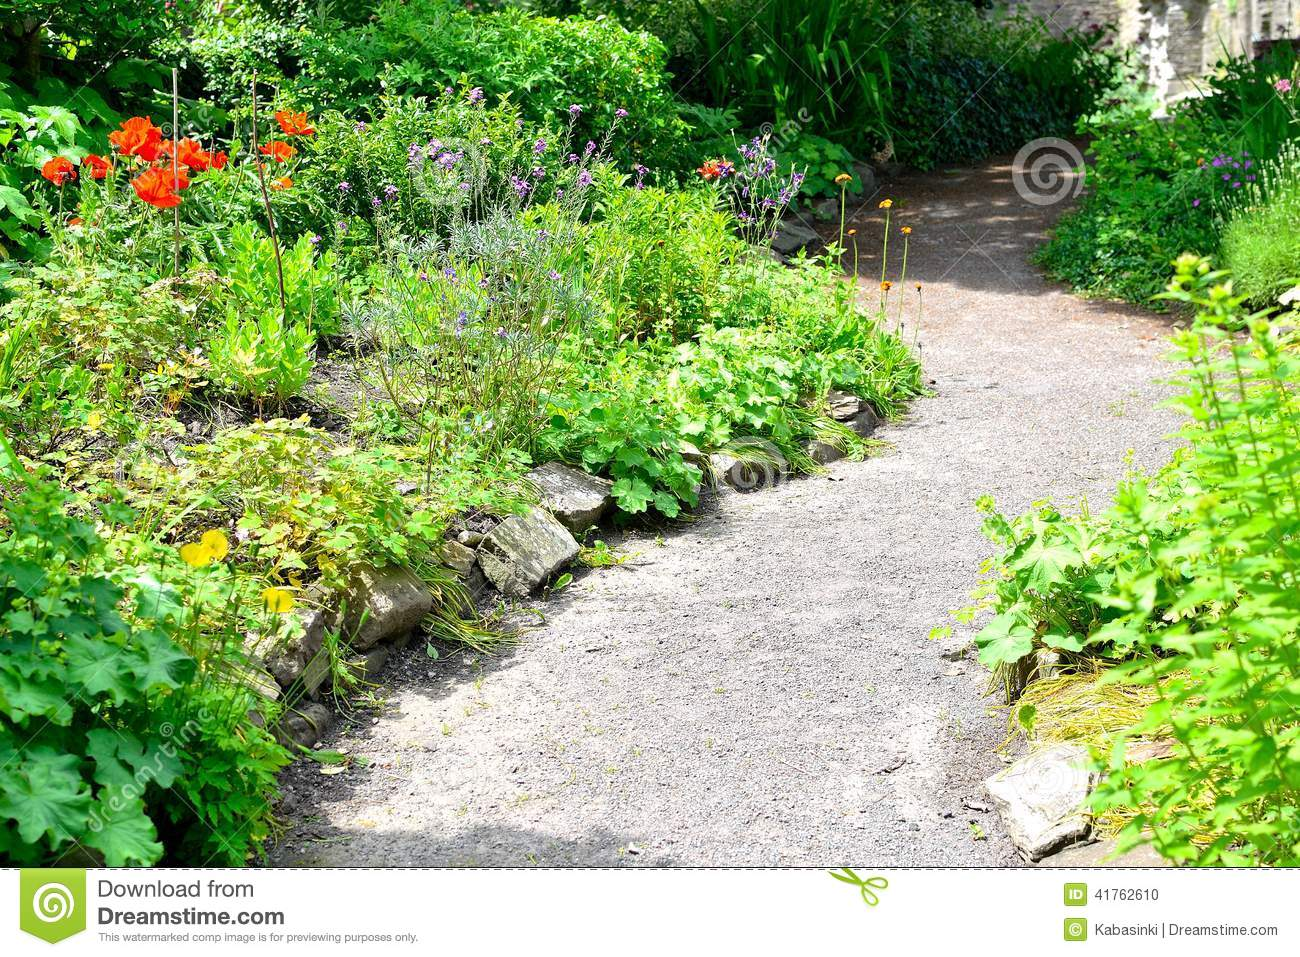 Chemin dans un jardin anglais de cottage photo stock for Jardin de cottage anglais